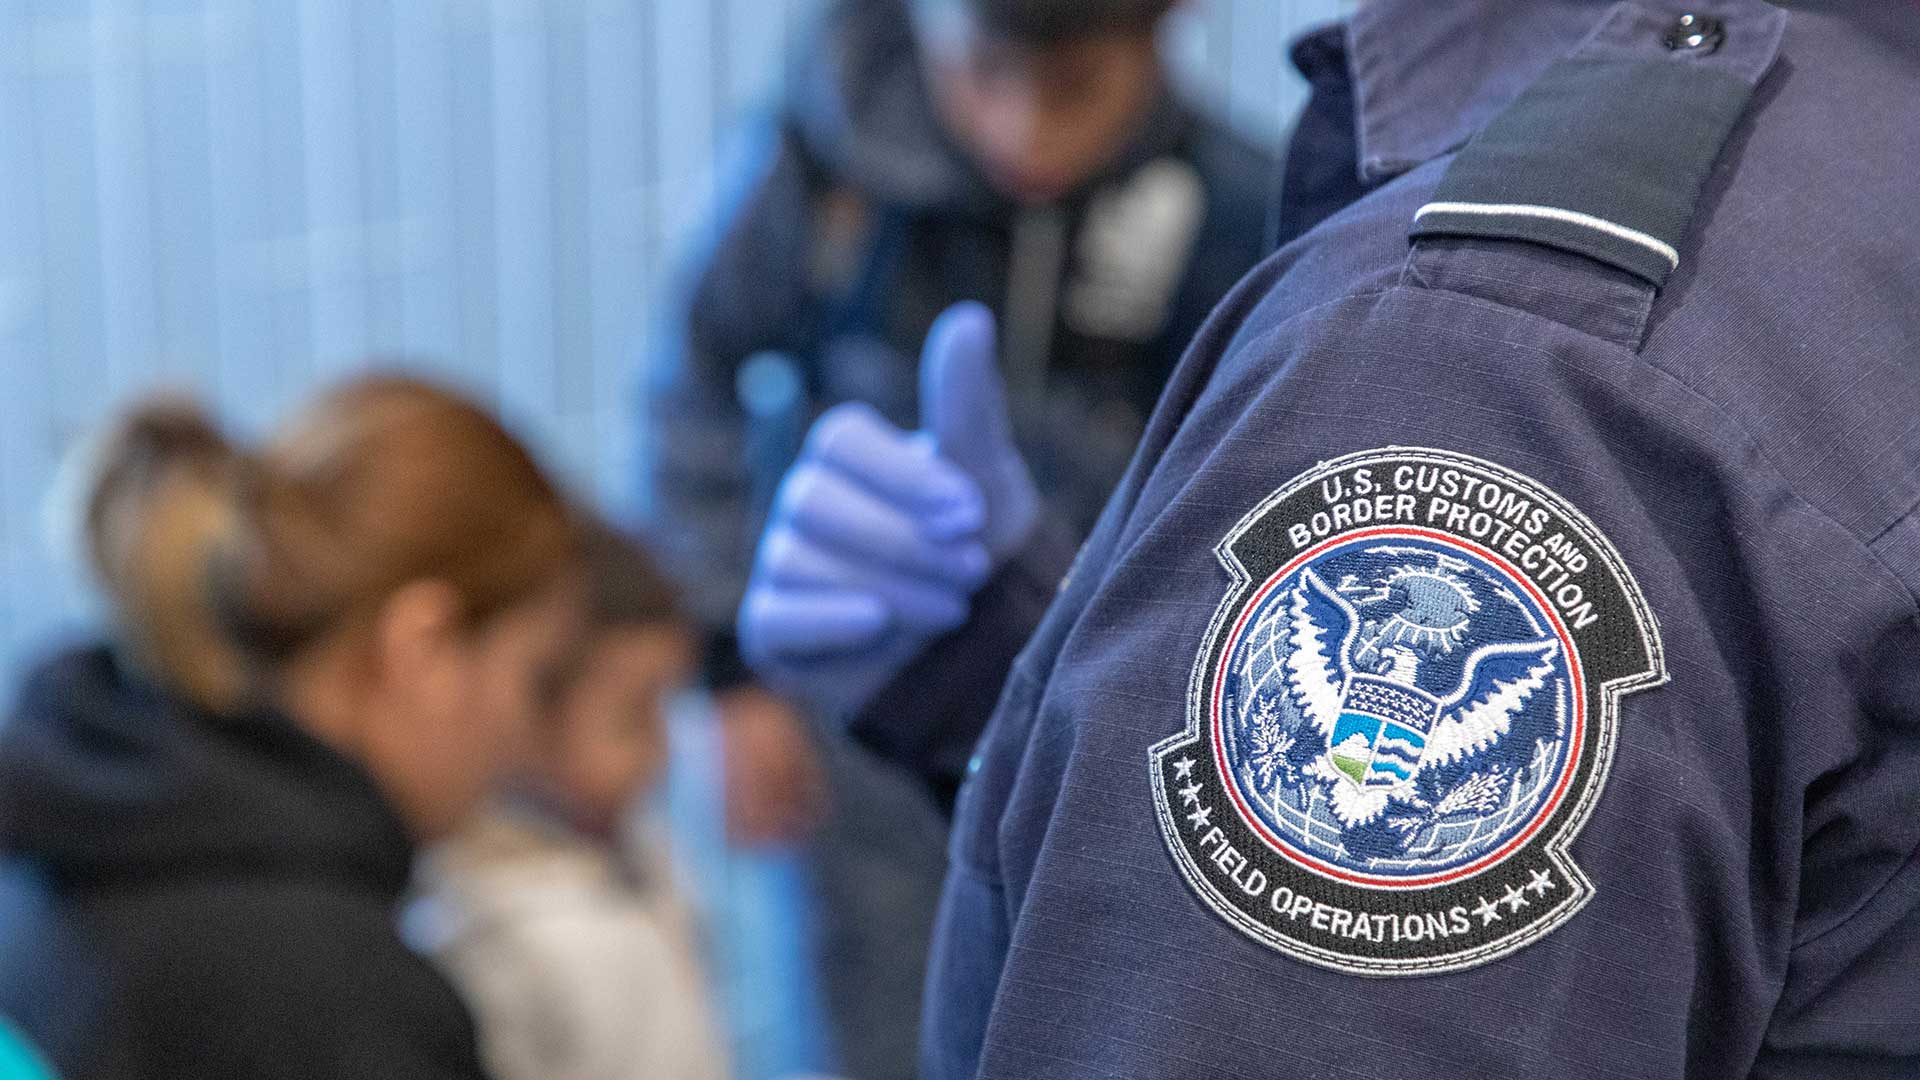 Migrants and Customs and Border Protection officers at the San Ysidro Port of Entry, November 2018.